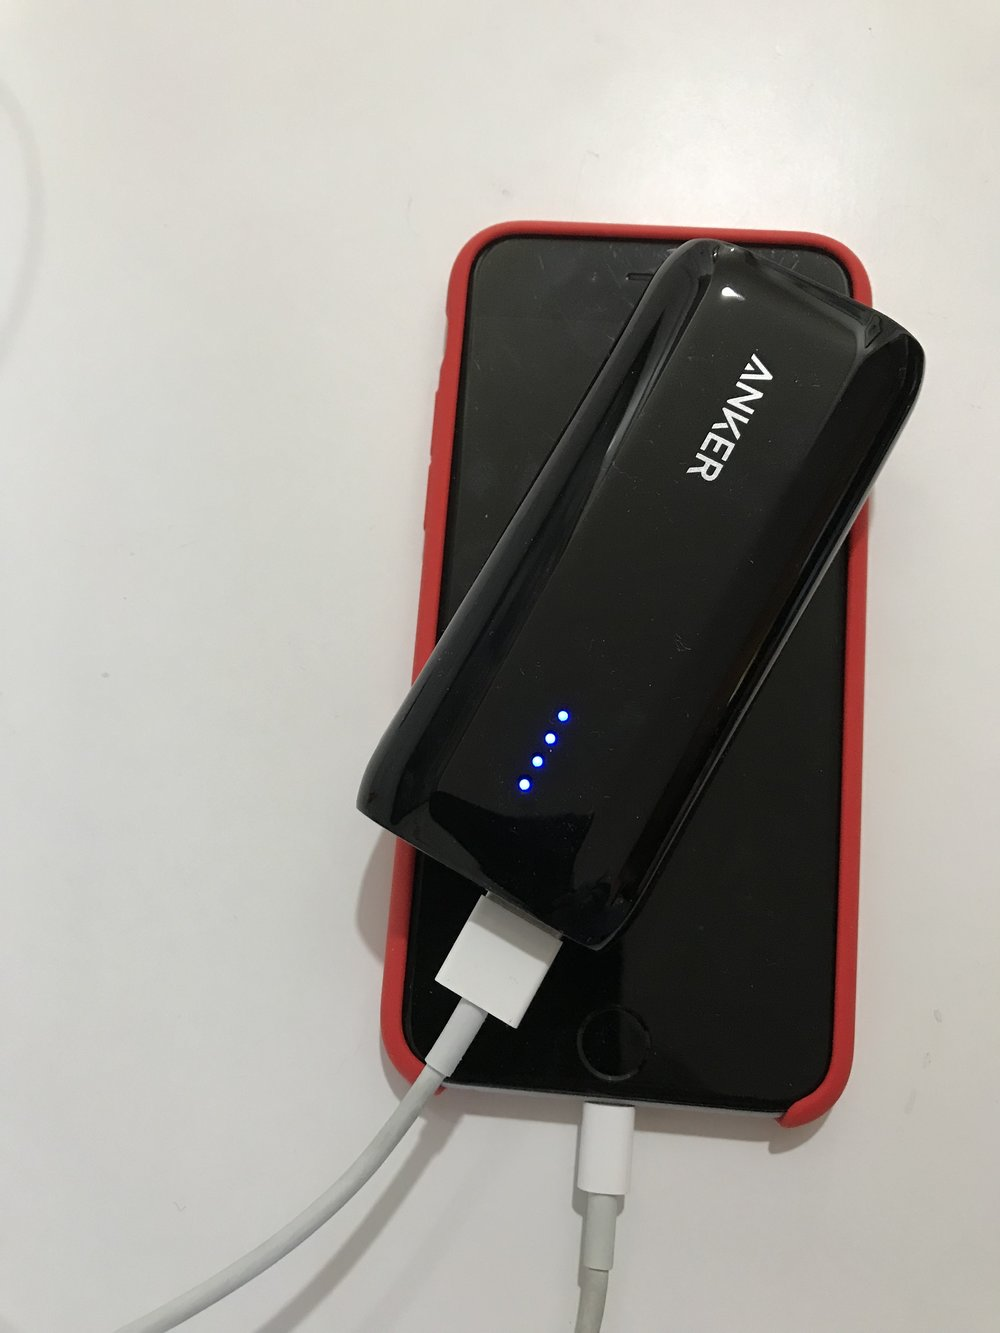 I've always found Anker to be a moderately priced, and reliable brand - It also charges iPads.